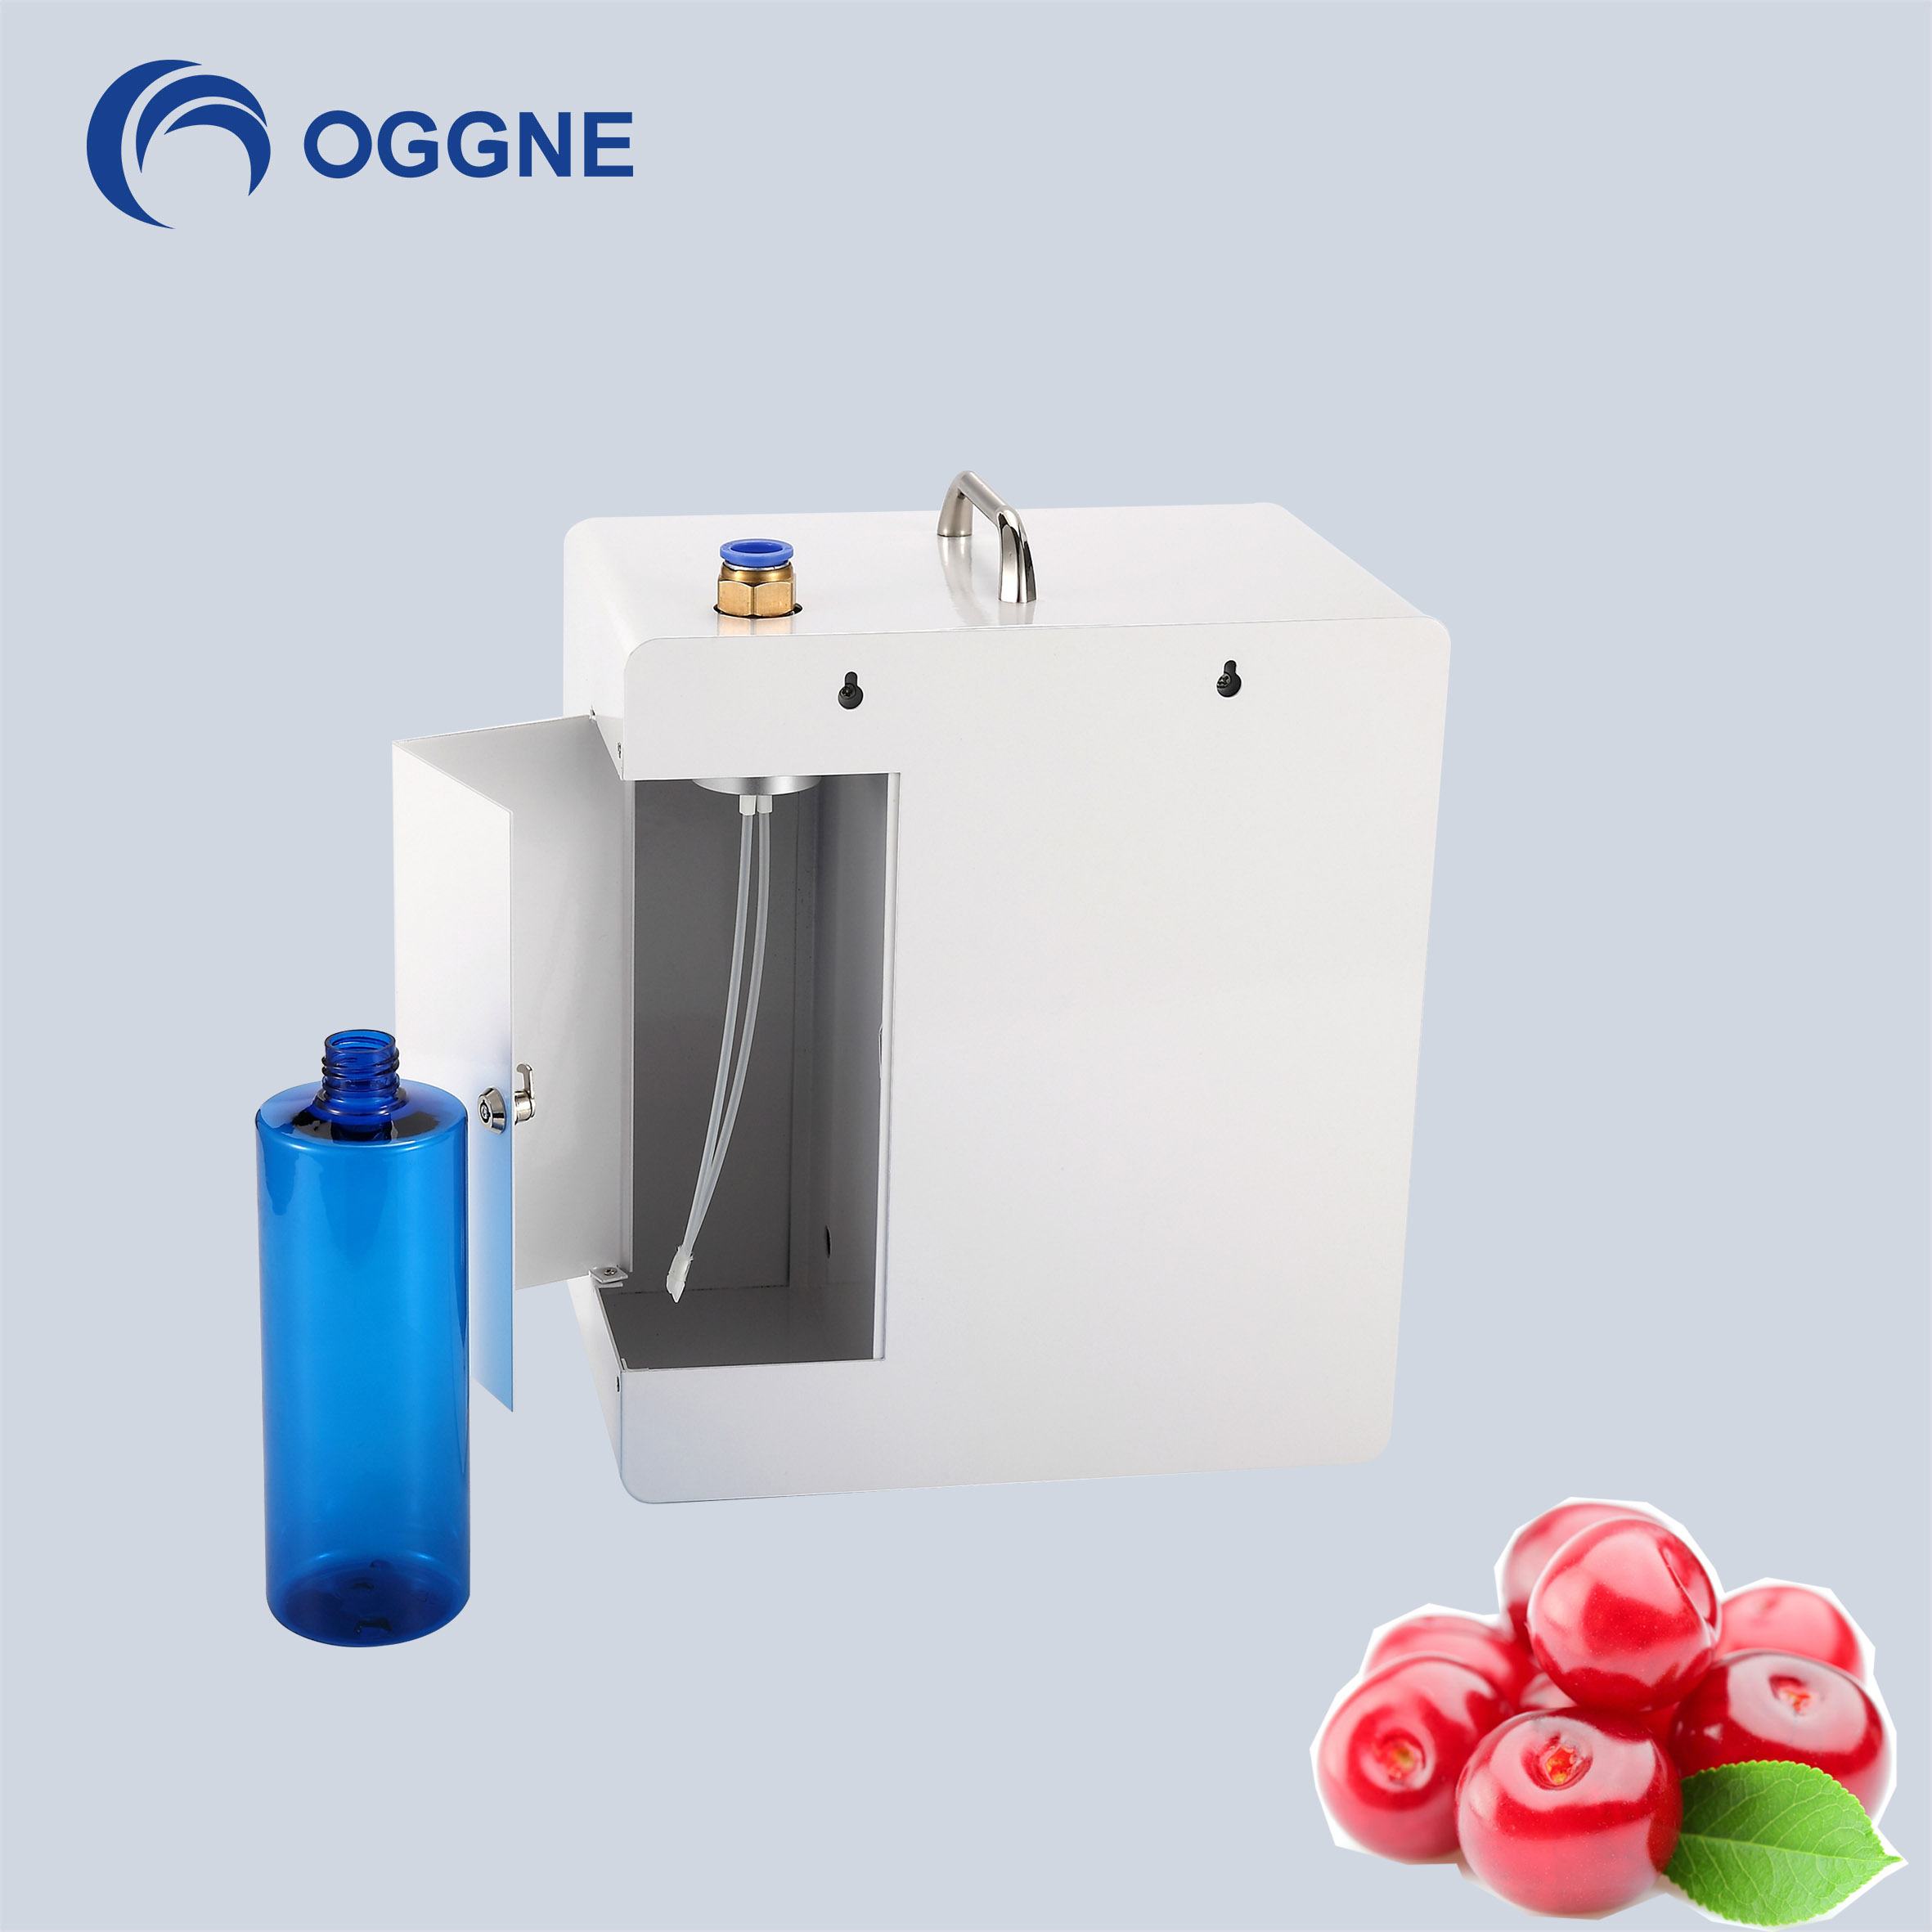 OGGNE brand commercial scent diffuser white color scent air machine for sale